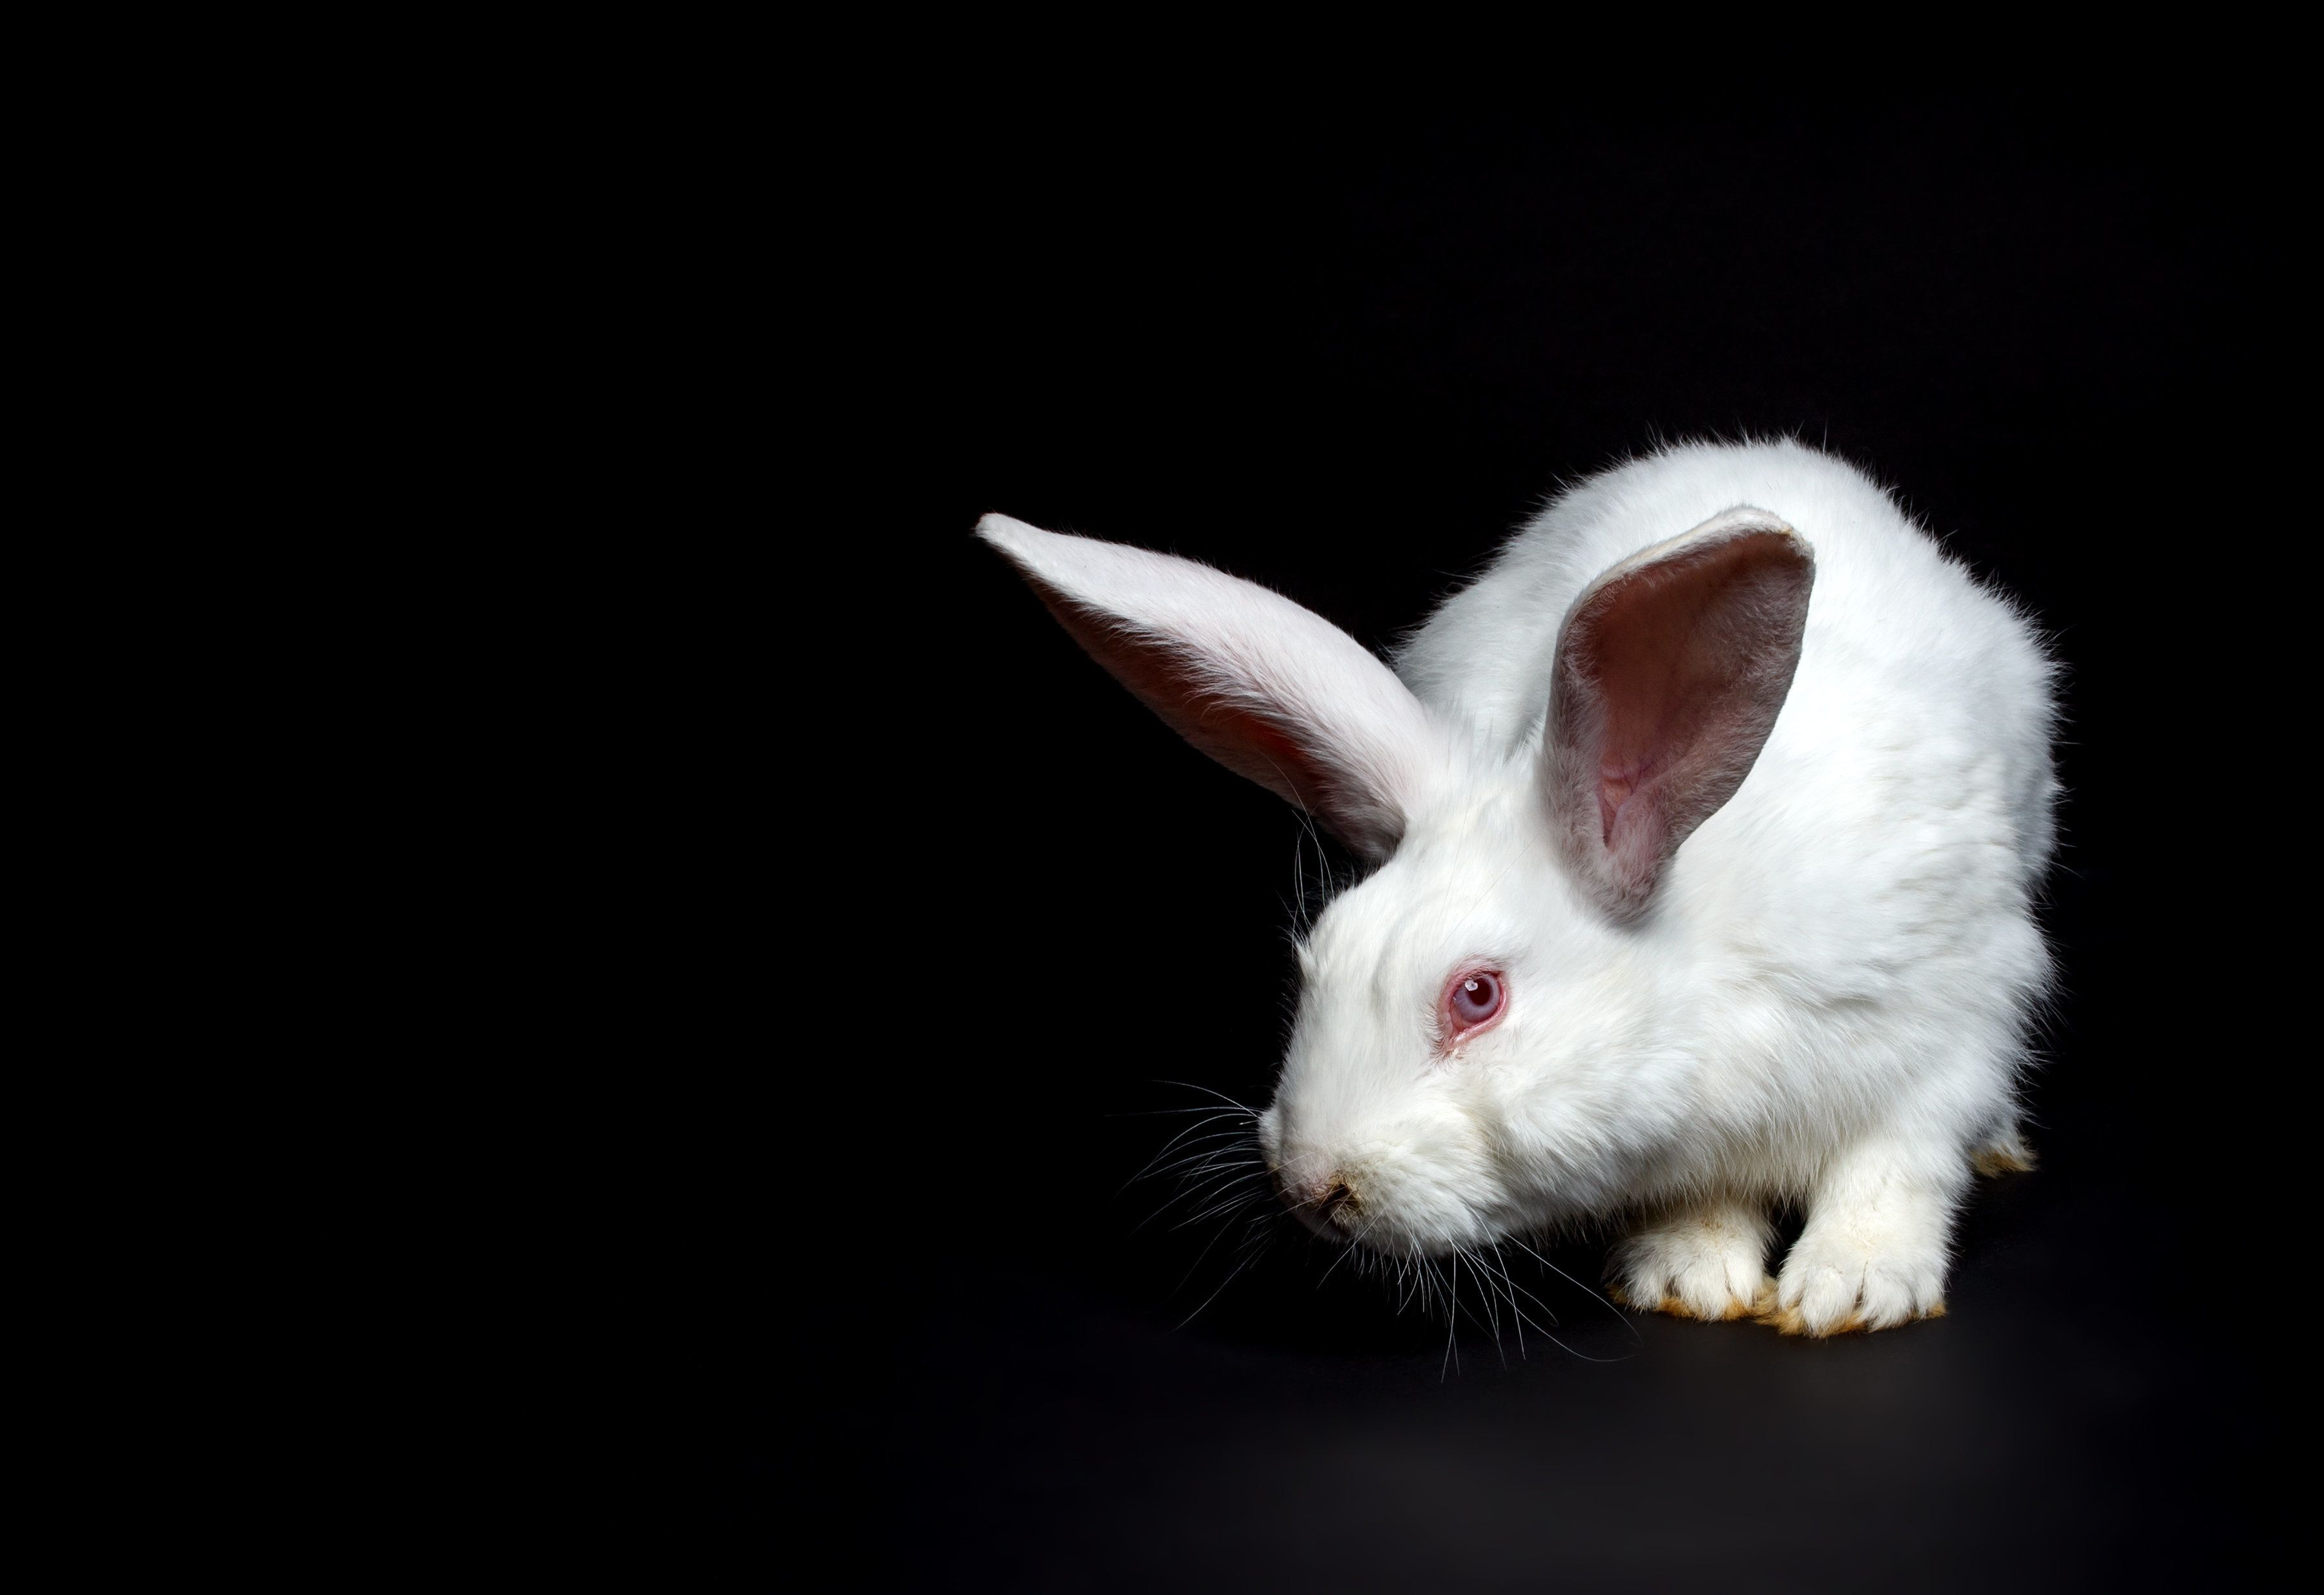 University Of Michigan Accused Of 'Negligence' Over Lab Animal Deaths, Missing Rabbit